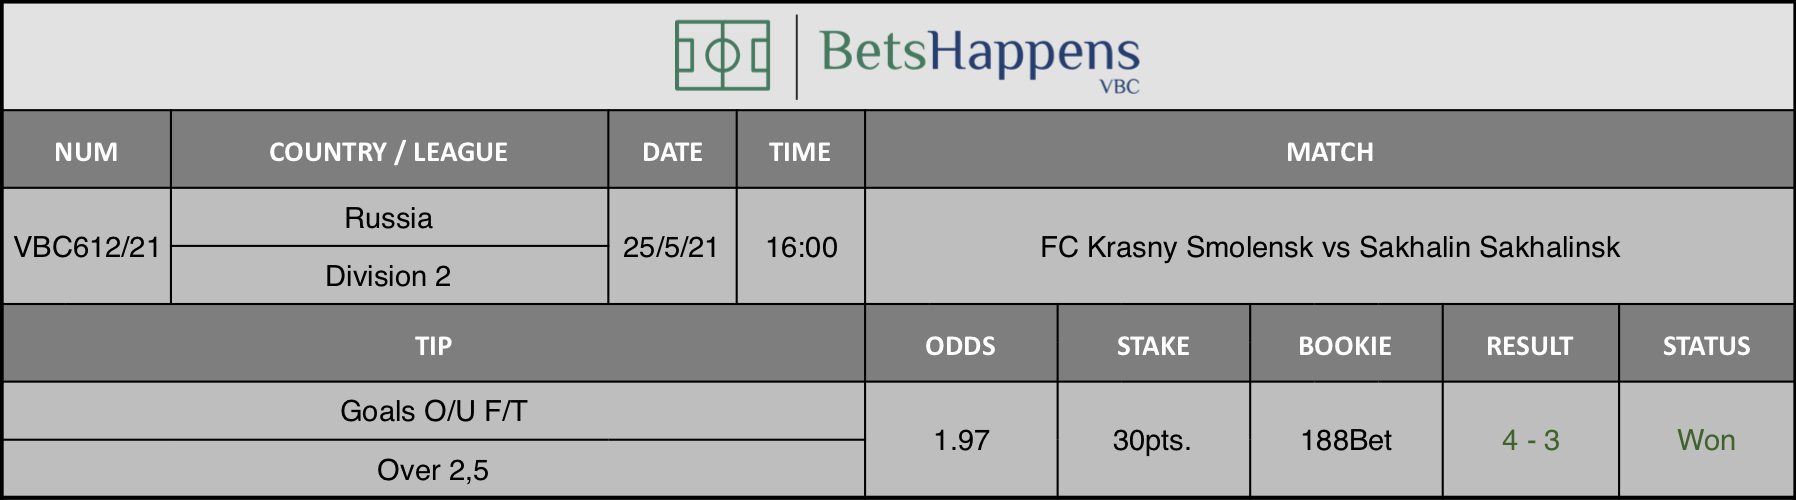 Results of our tip for the FC Krasny Smolensk vs Sakhalin Sakhalinsk match where Goals O/U F/T Over 2,5 is recommended.